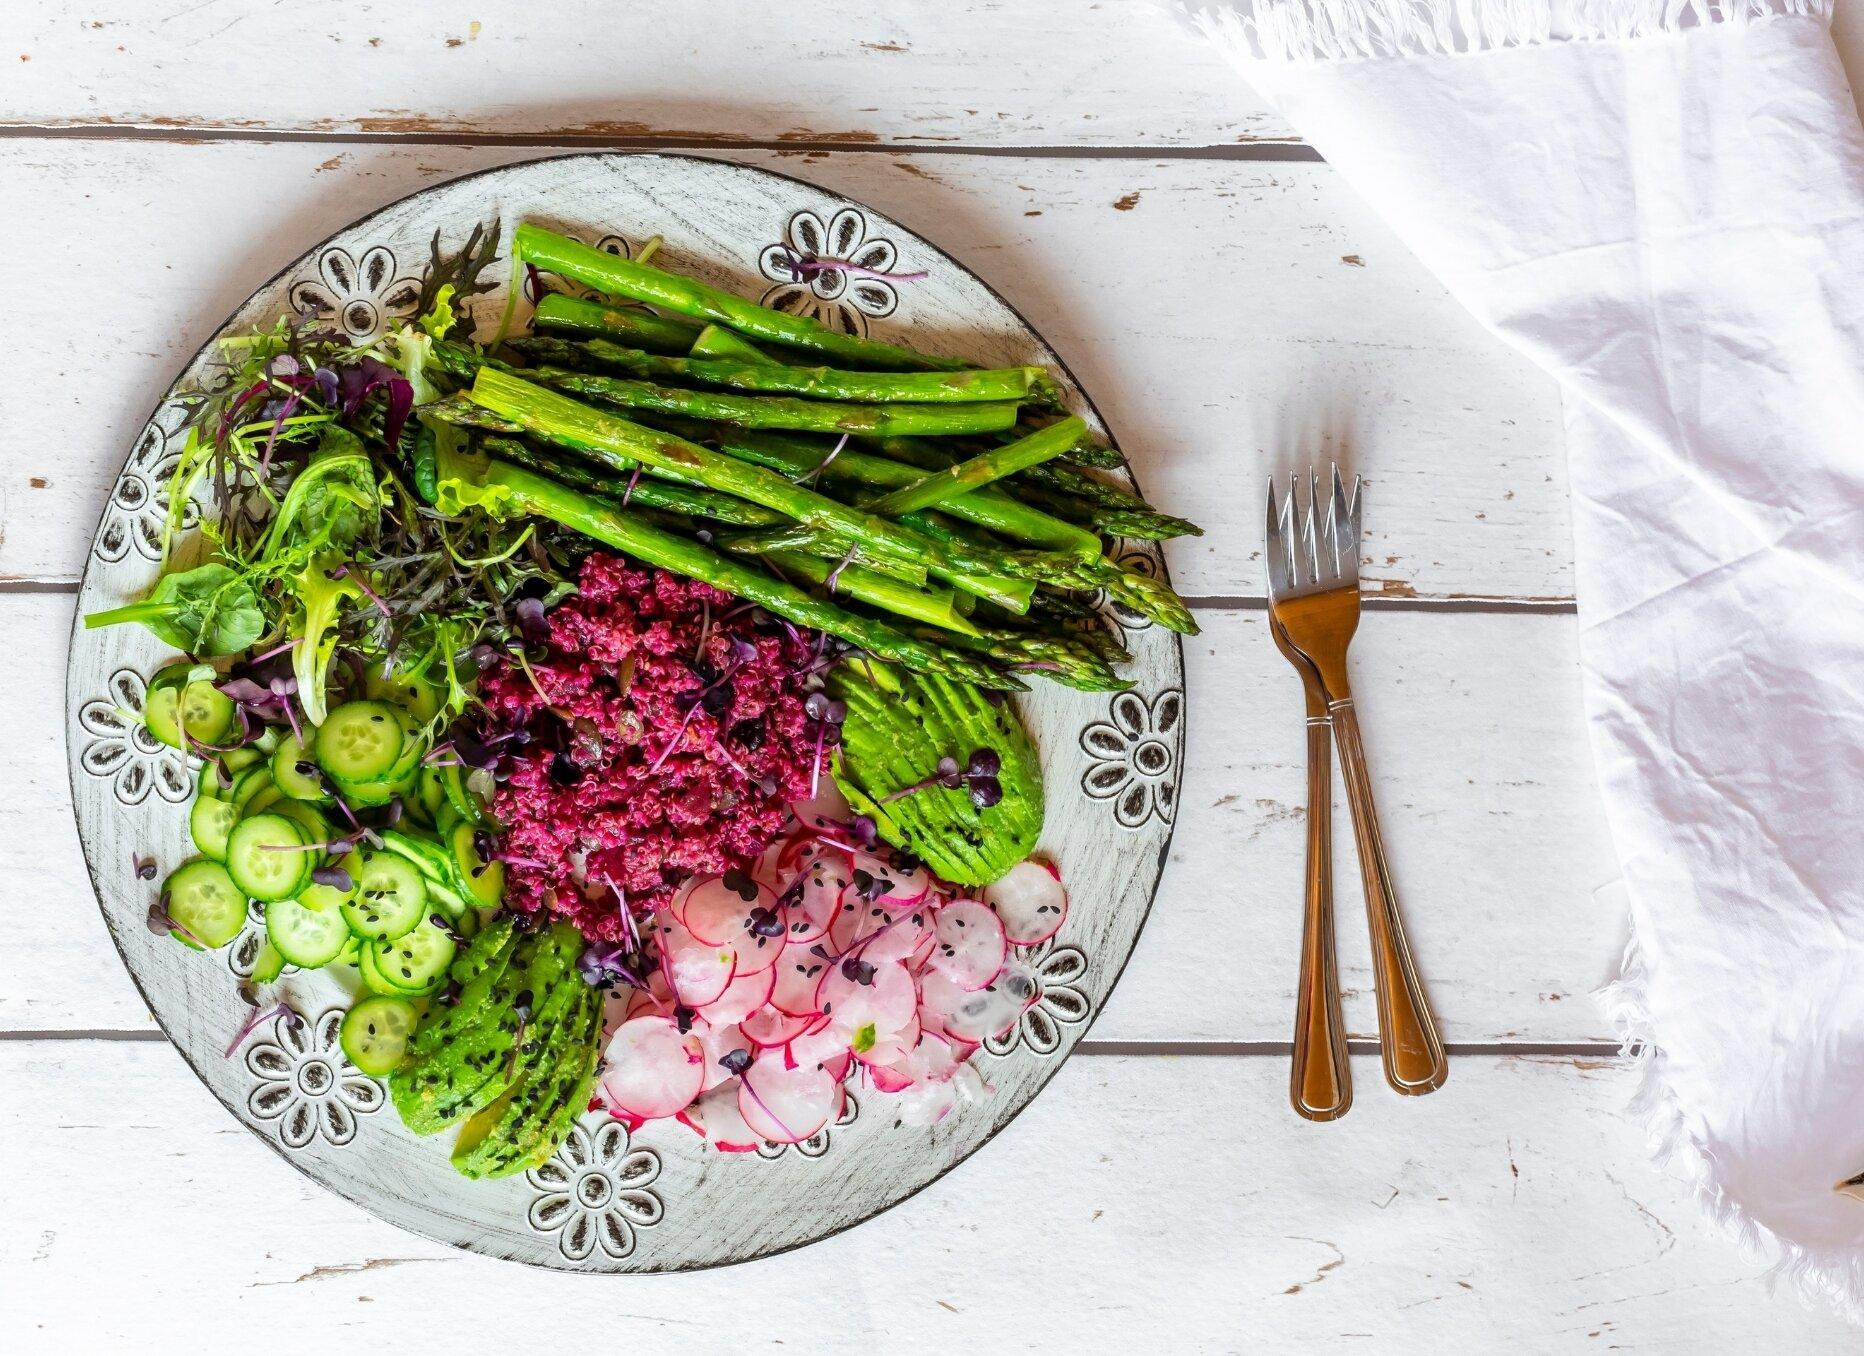 20+ Delicious Recipes to Use What's Coming Up in Your Spring Garden